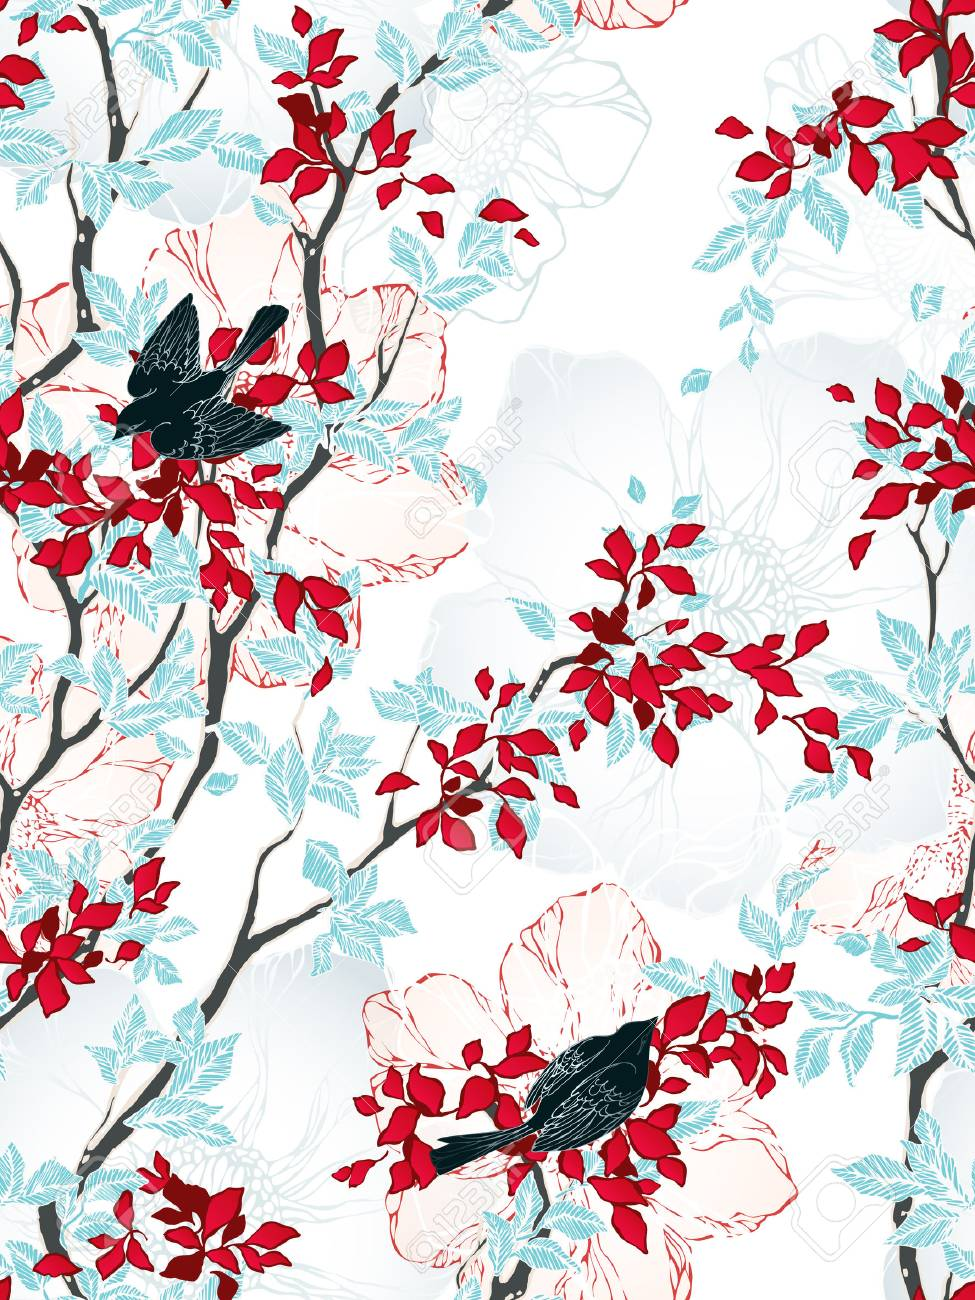 seamless pattern with trees, flowers and birds. vintage wallpaper